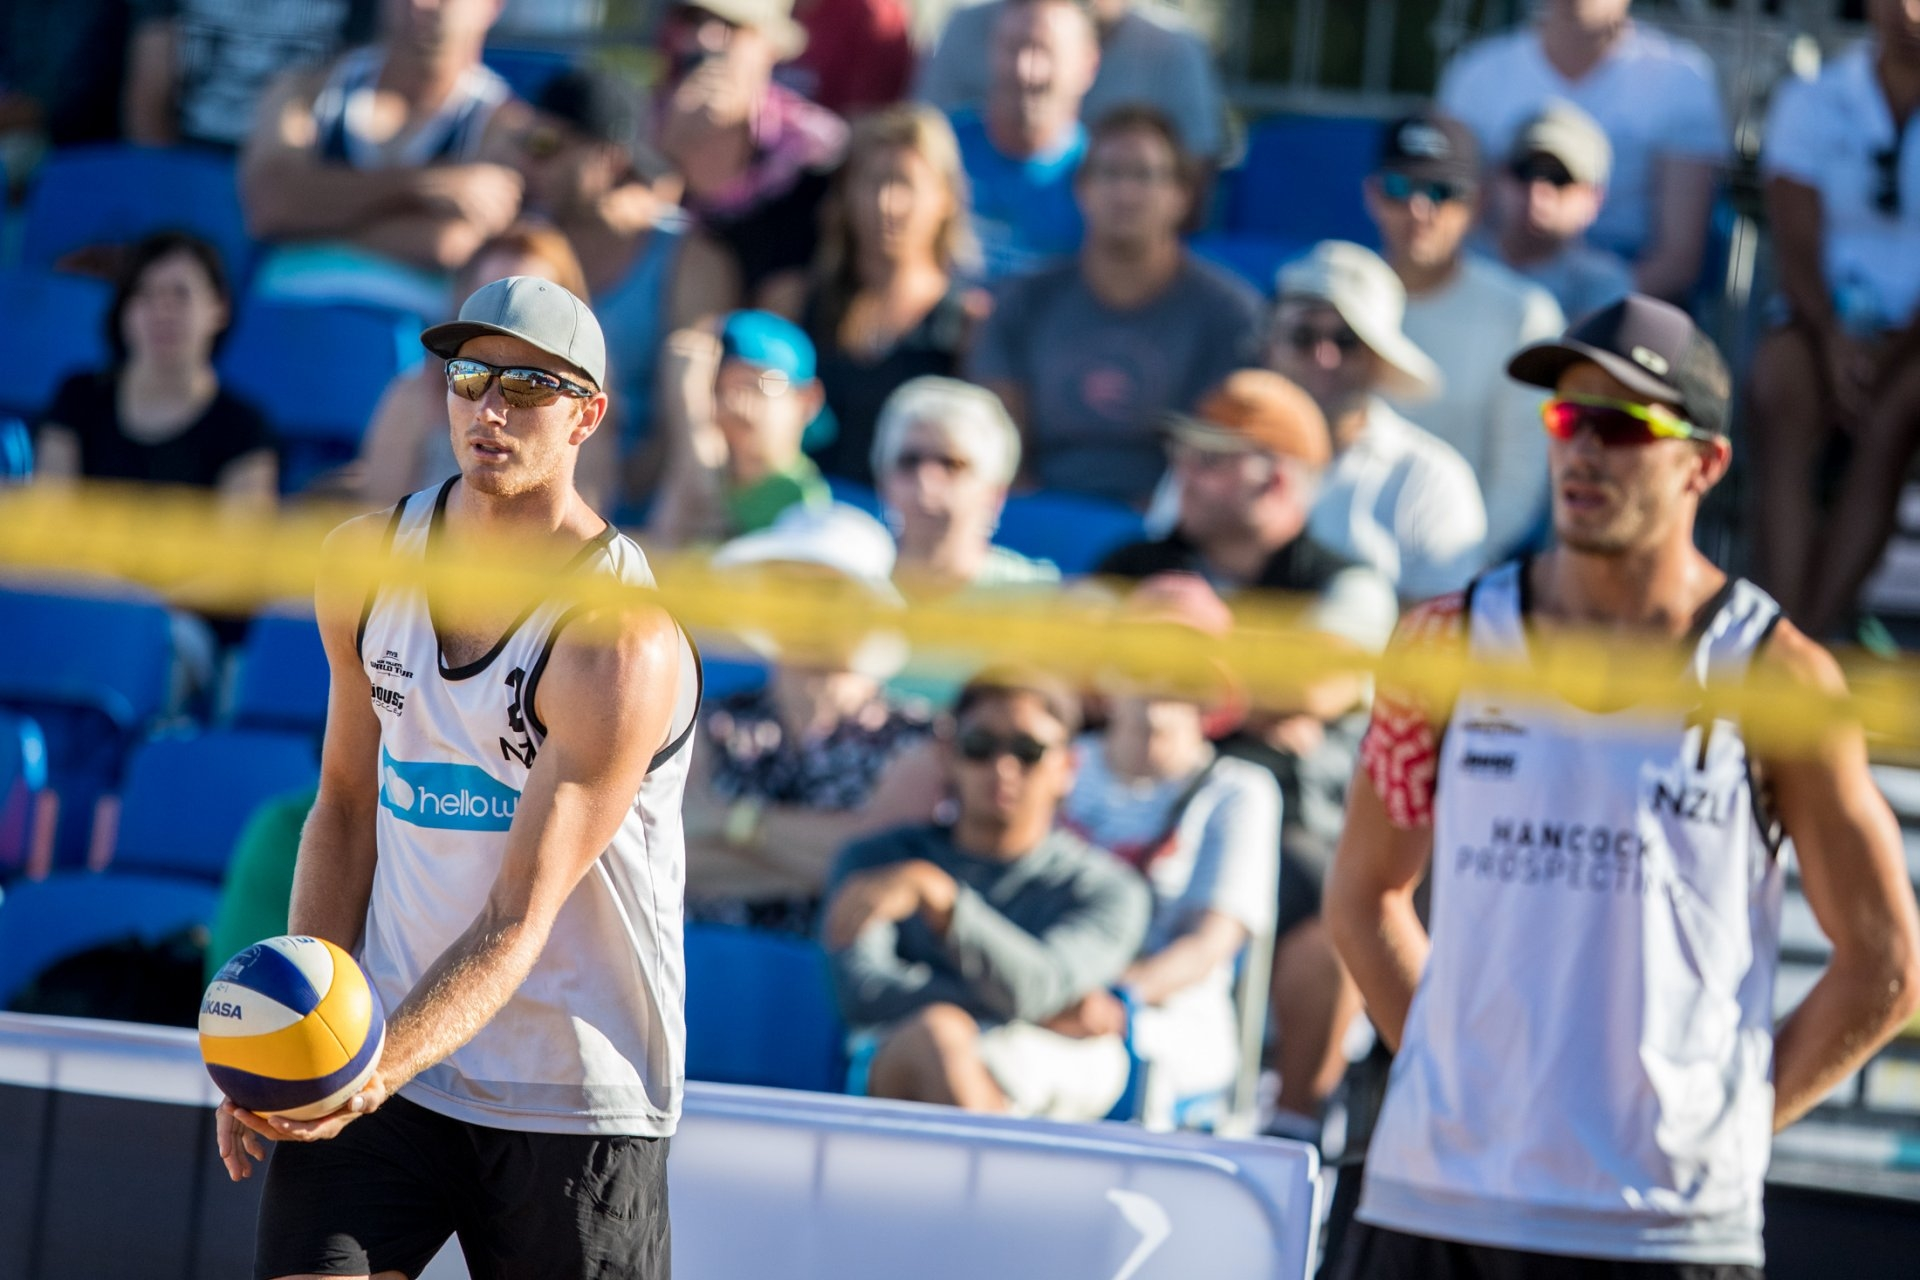 The O'Dea brothers Sam and Ben were selected to play for New Zealand at the Coolangatta Beachfront (Photocredit: FIVB)